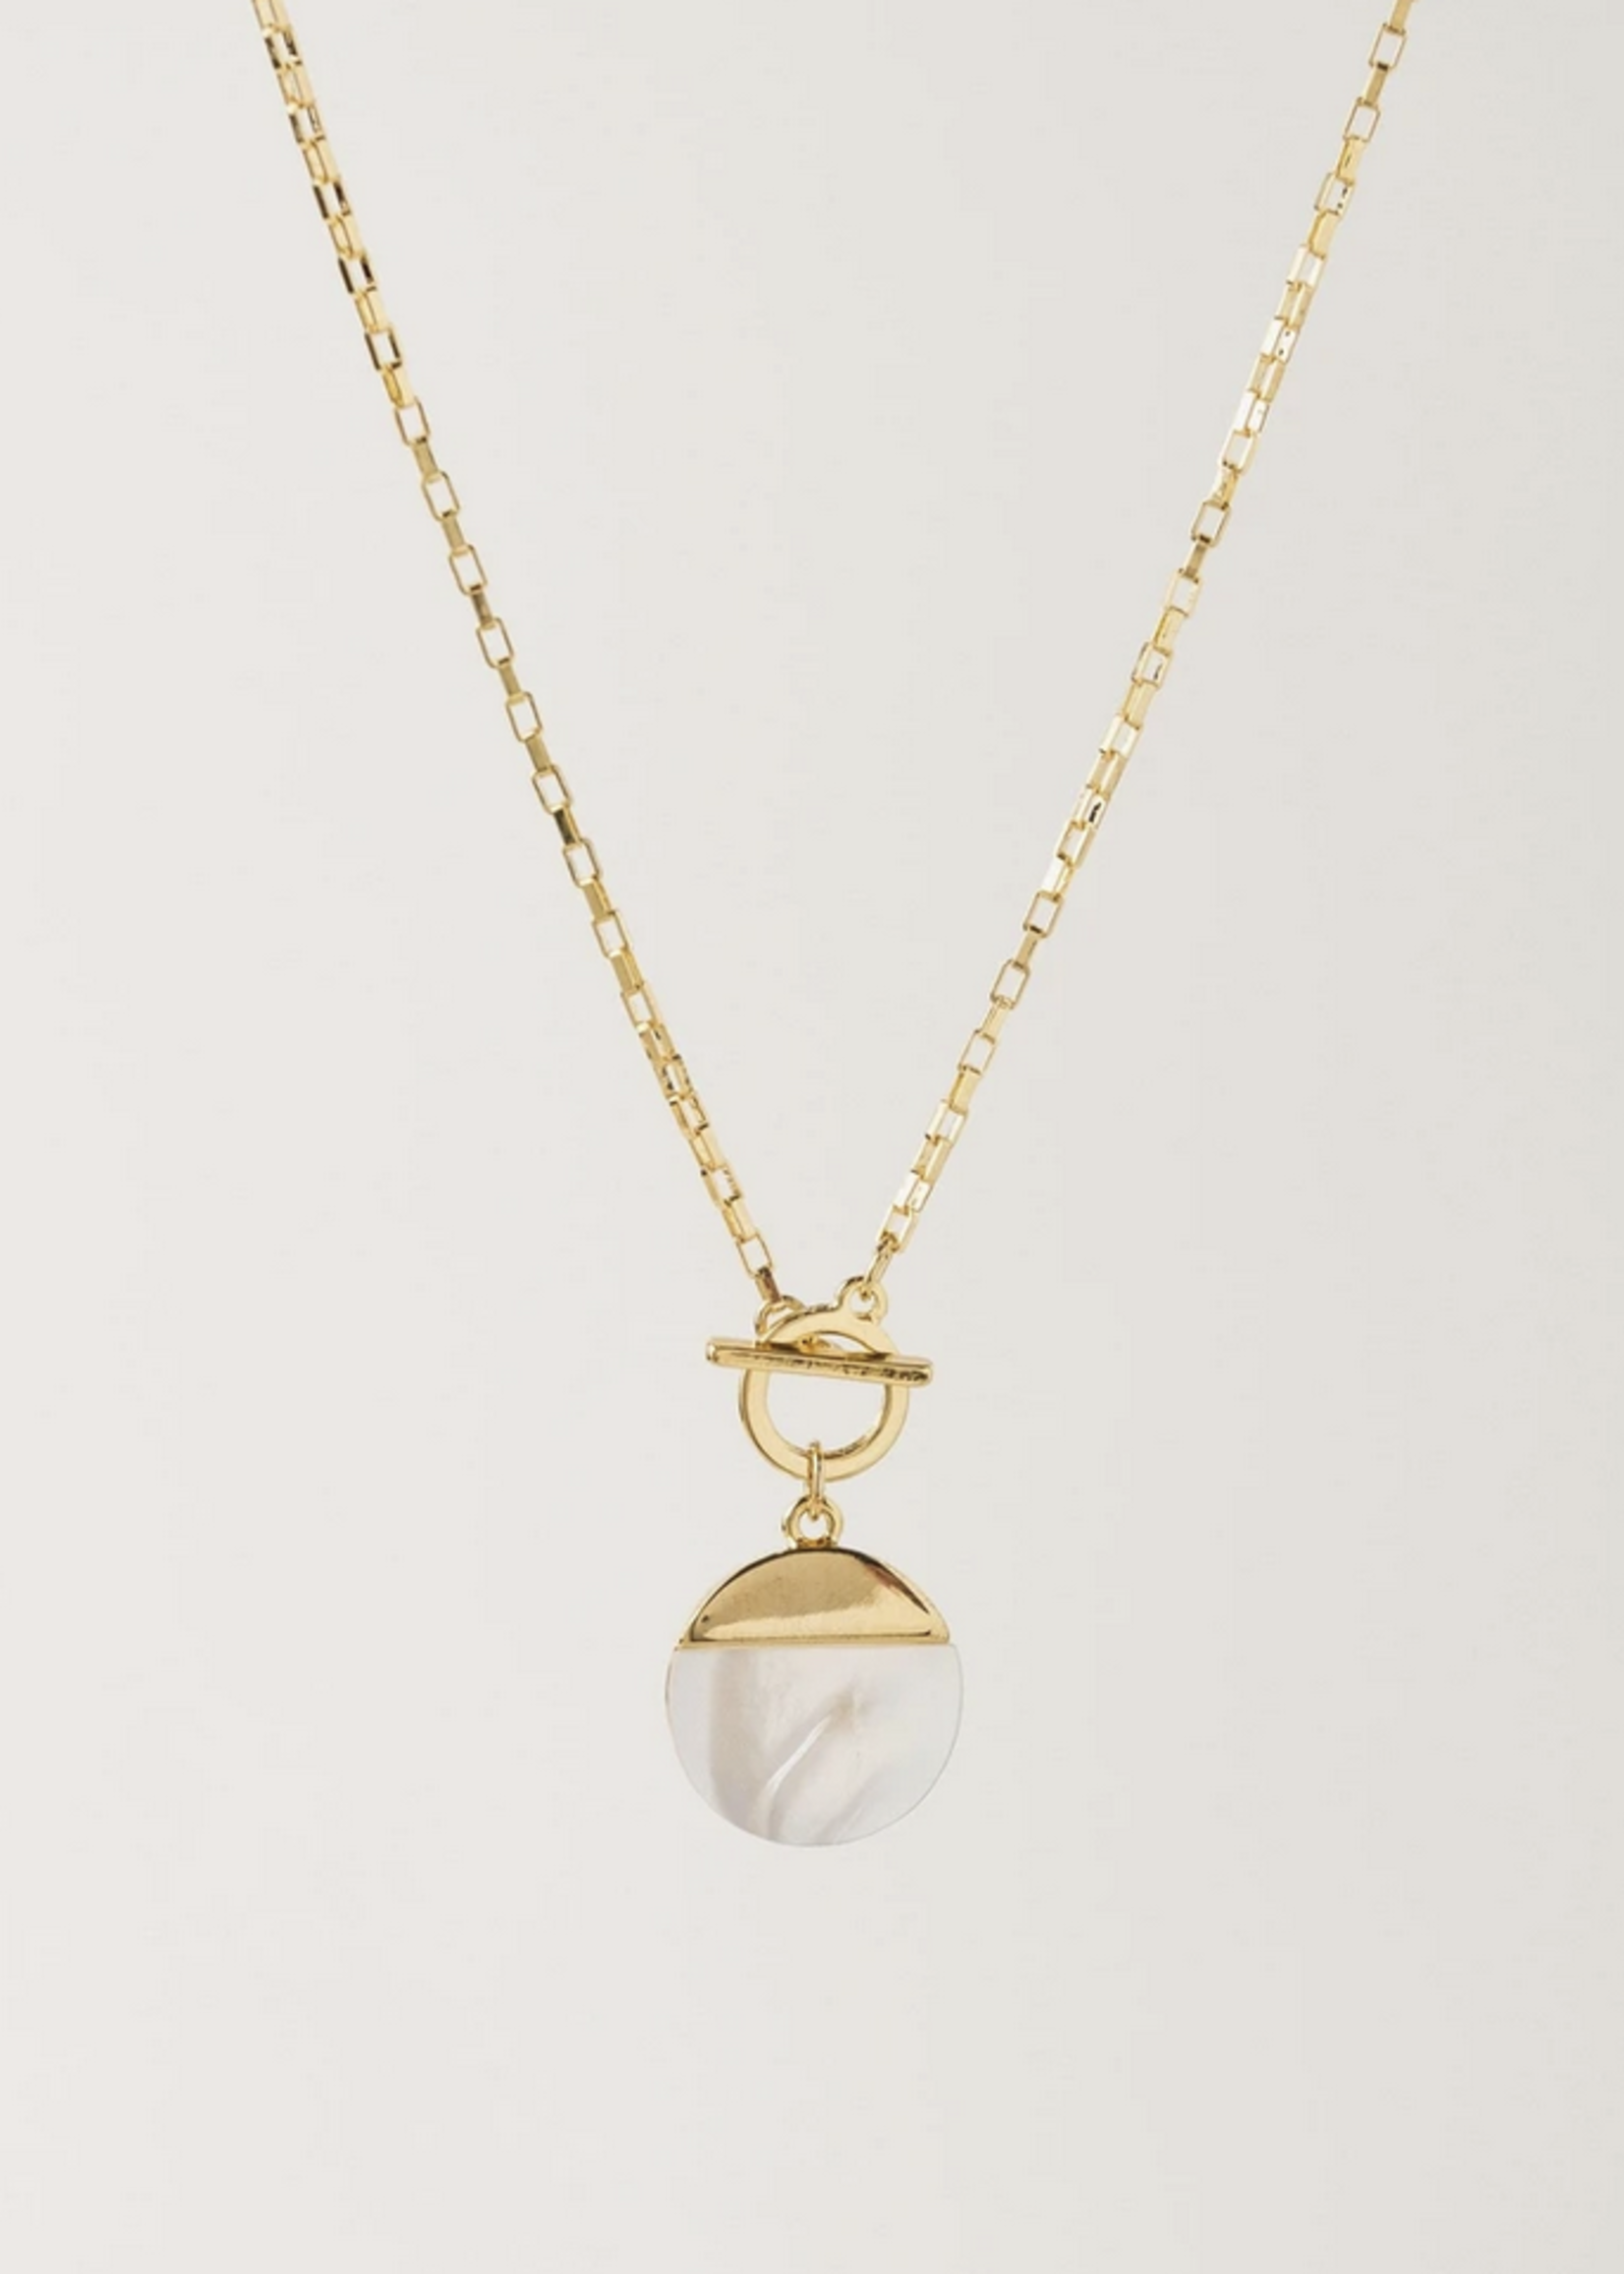 Oasis Toggle Necklass - White